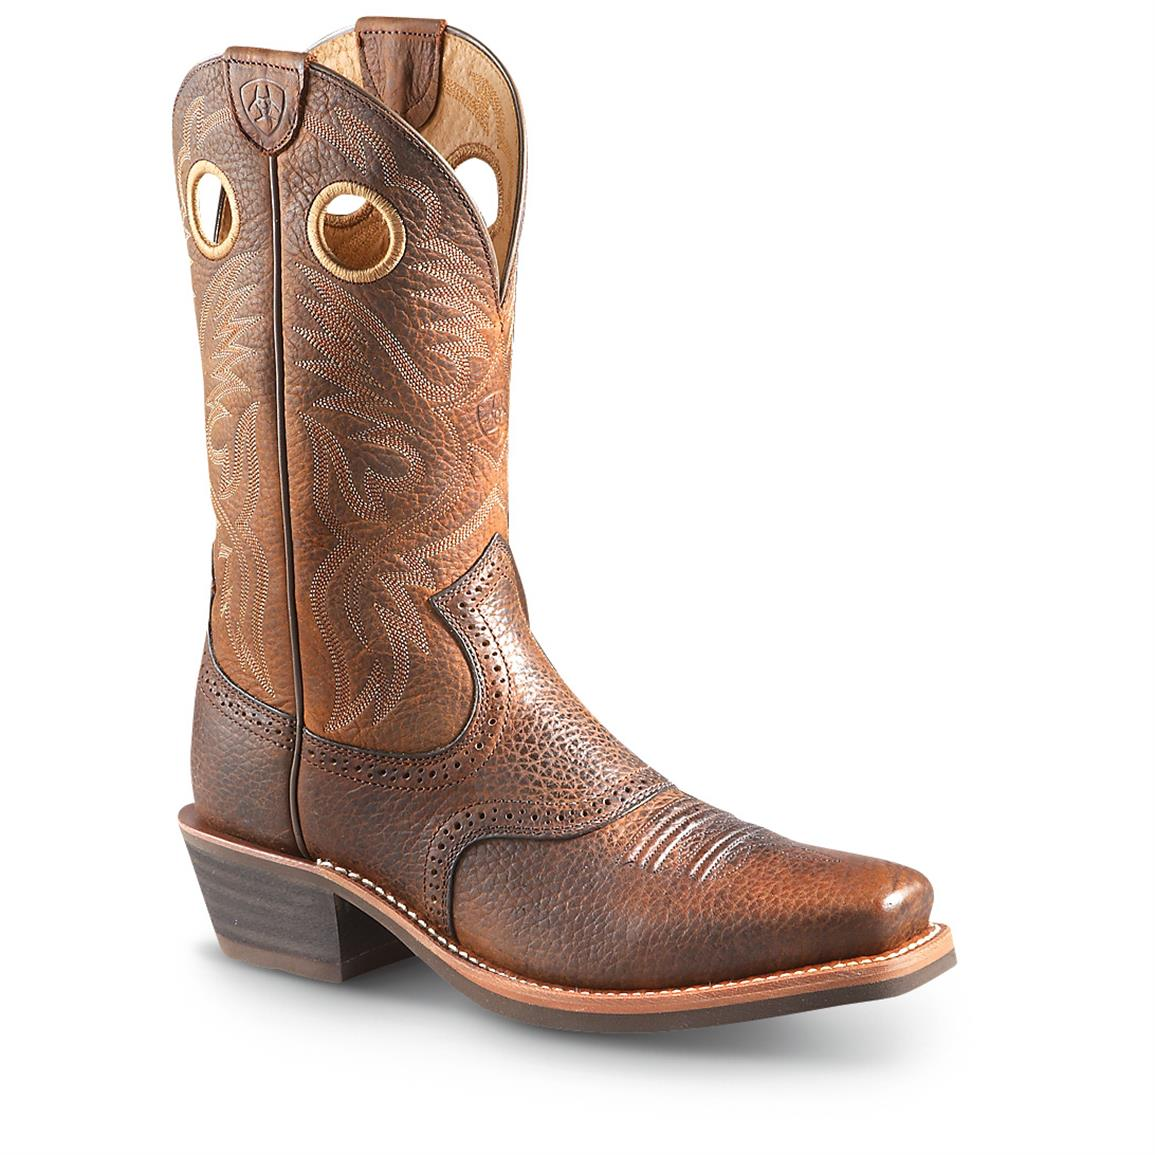 Ariat Men's Roughstock Cowboy Boots, Brown Oiled Rowdy